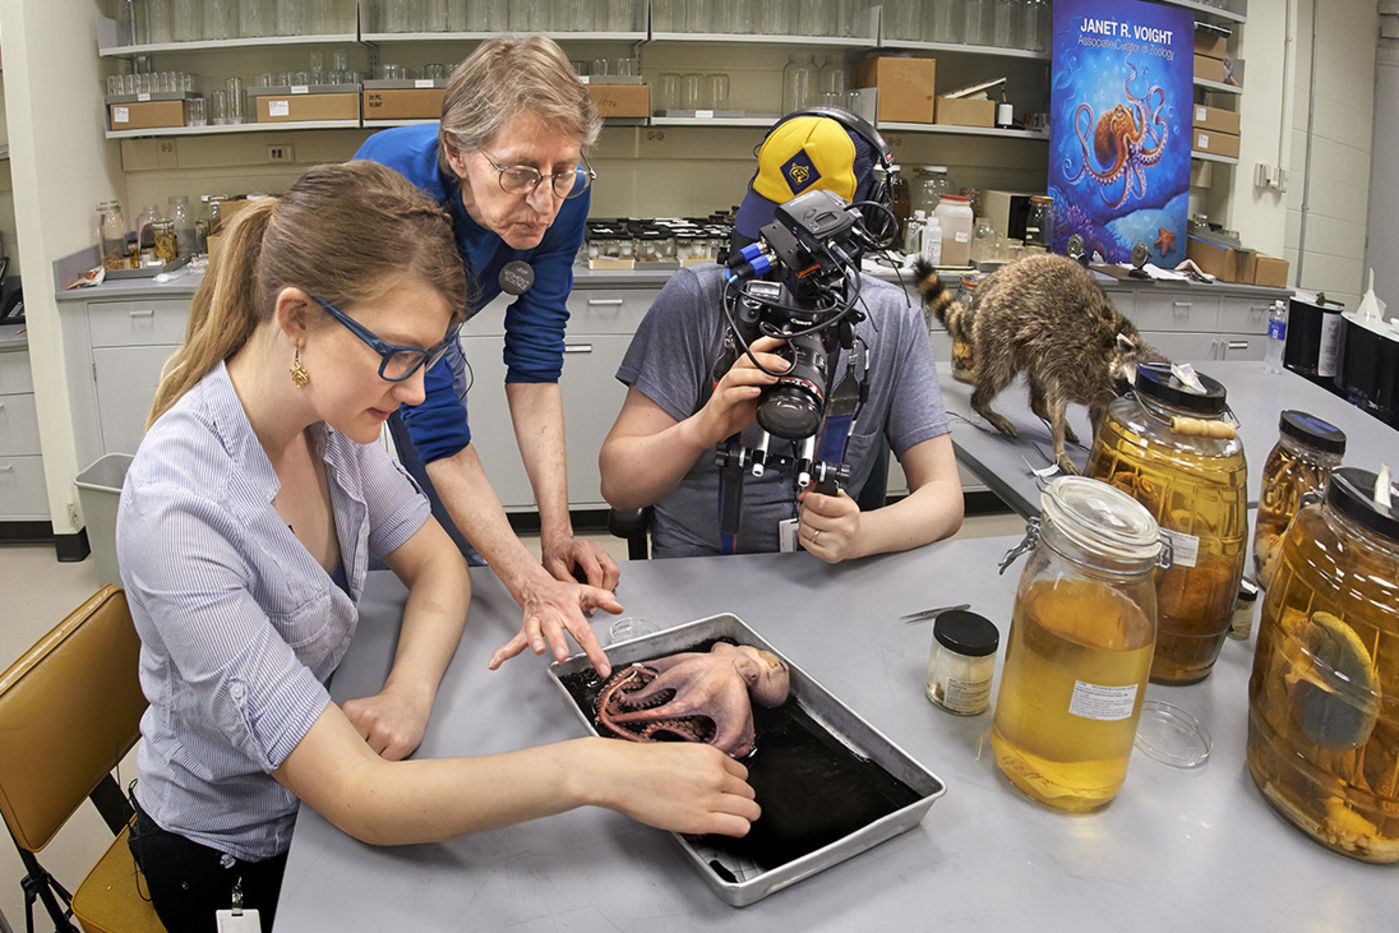 Host Emily Graslie examines an octopus specimen under the direction of curator Janet Voight while being filmed for The Brain Scoop.